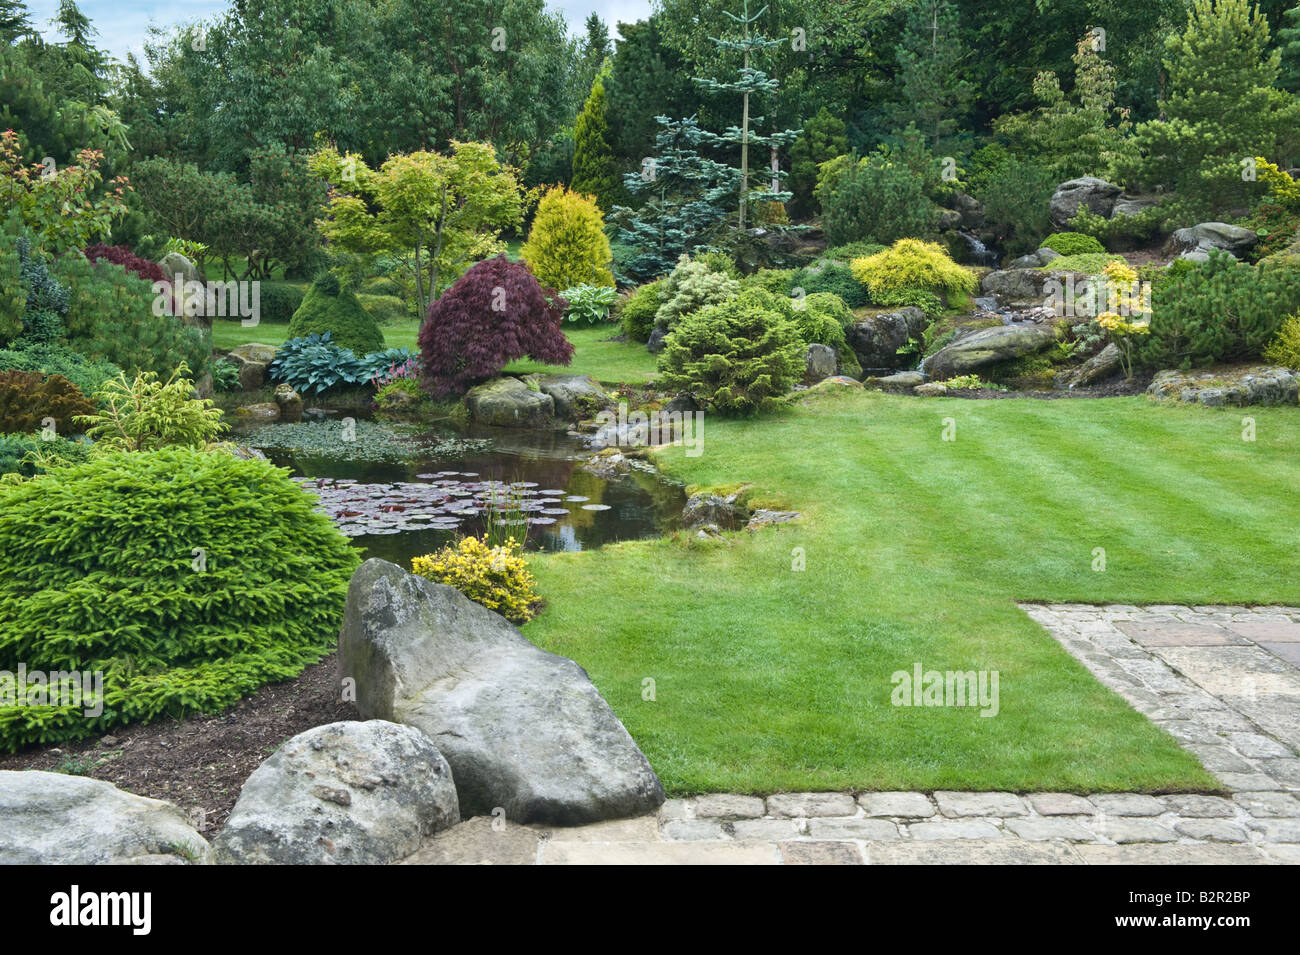 Gridstone rock with plants patio and pond in garden design by Bahaa Seedhom North Yorkshire England May - Stock Image